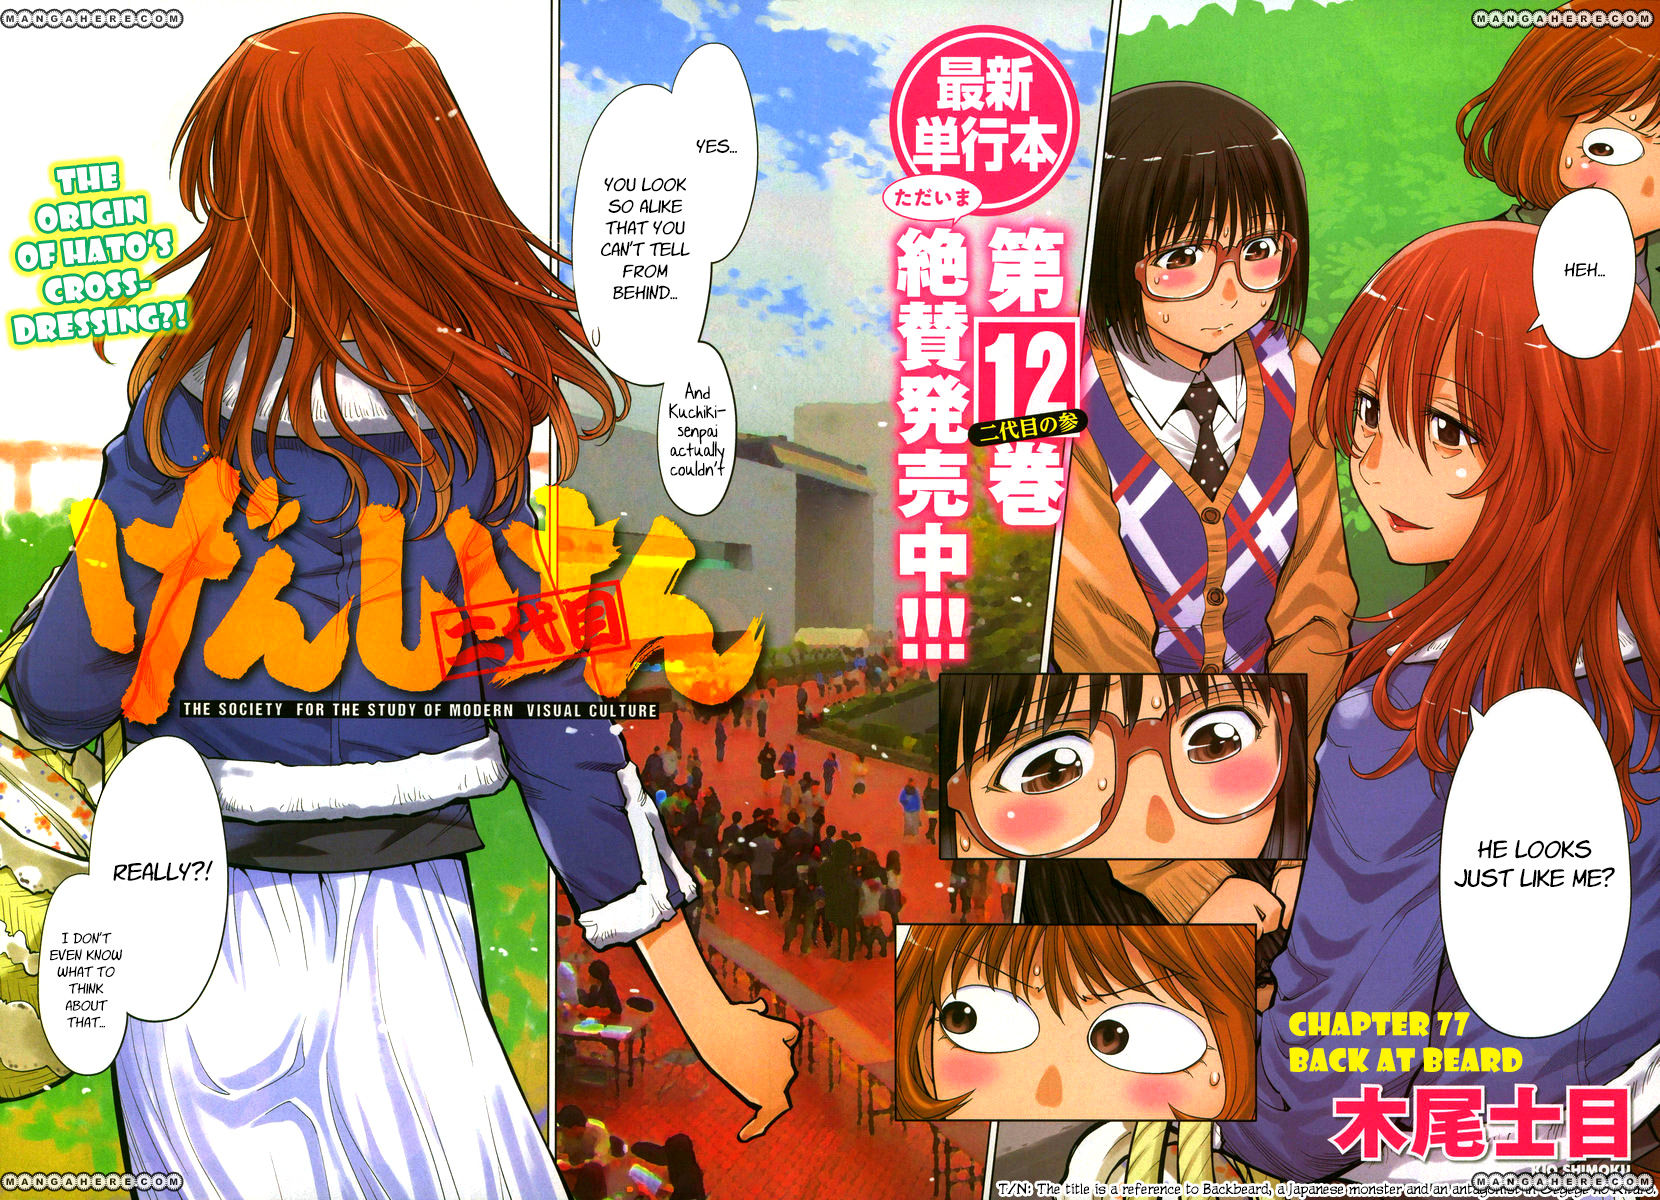 Genshiken Nidaime - The Society for the Study of Modern Visual Culture II 77 Page 2